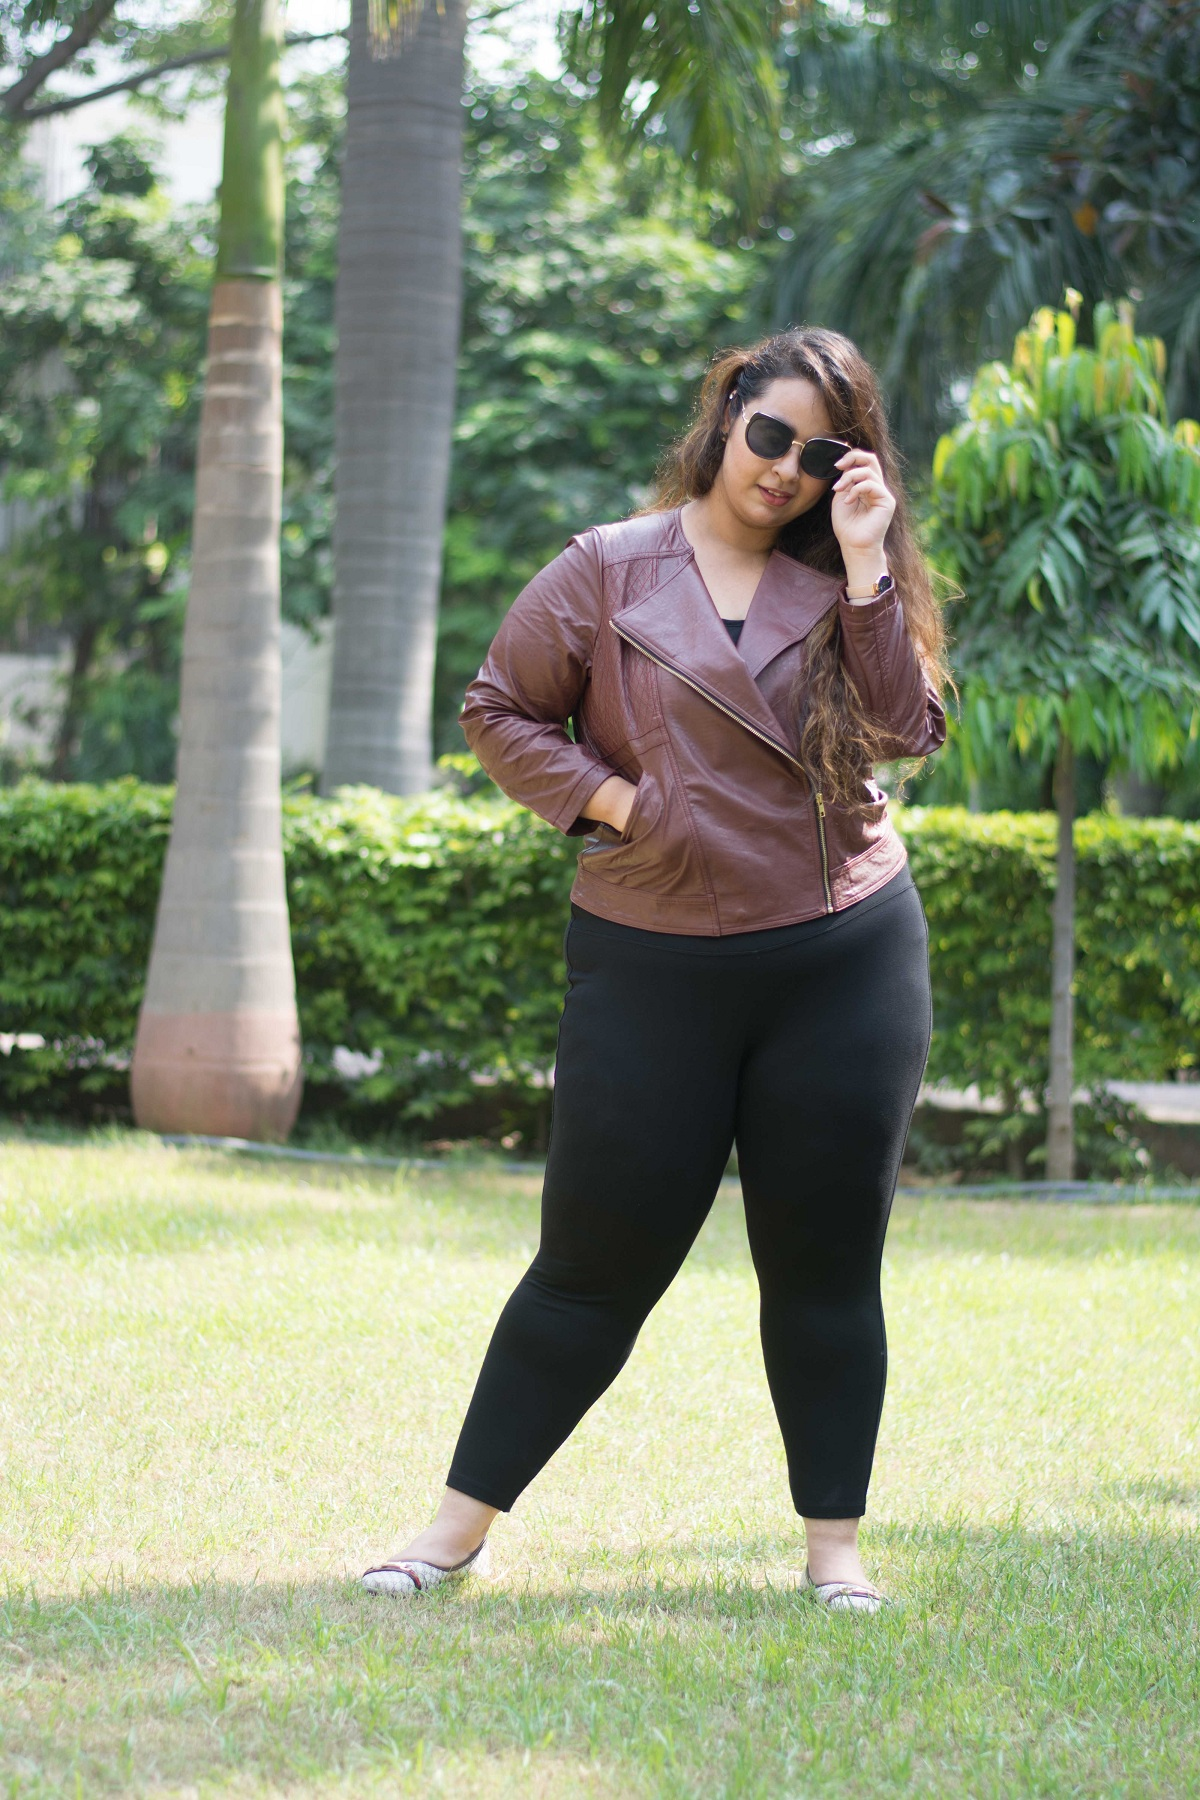 Thecurvyprincess Welcoming Fall In India With Faux Leather Ft Amydus